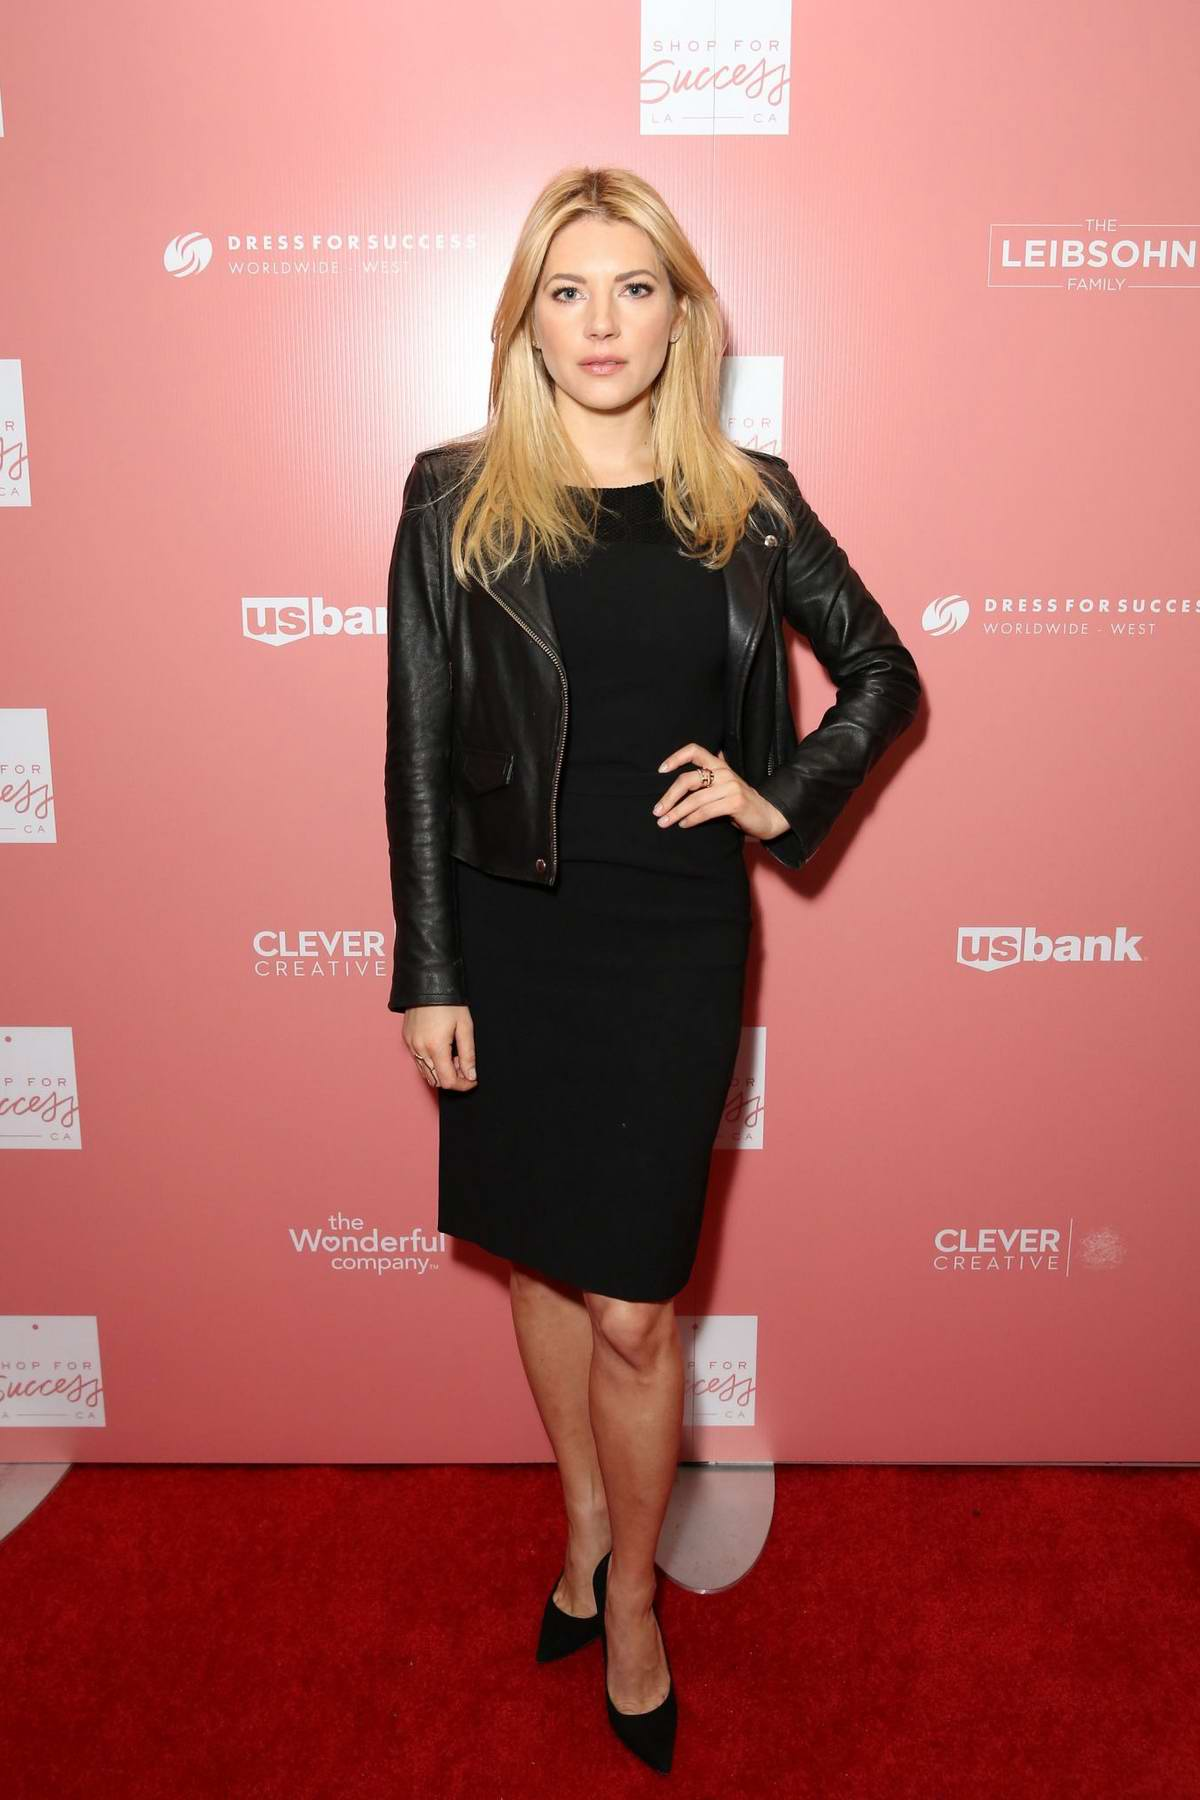 Katheryn Winnick attends 'Shop For Success': Dress For Success West Coast Fundraiser in Los Angeles